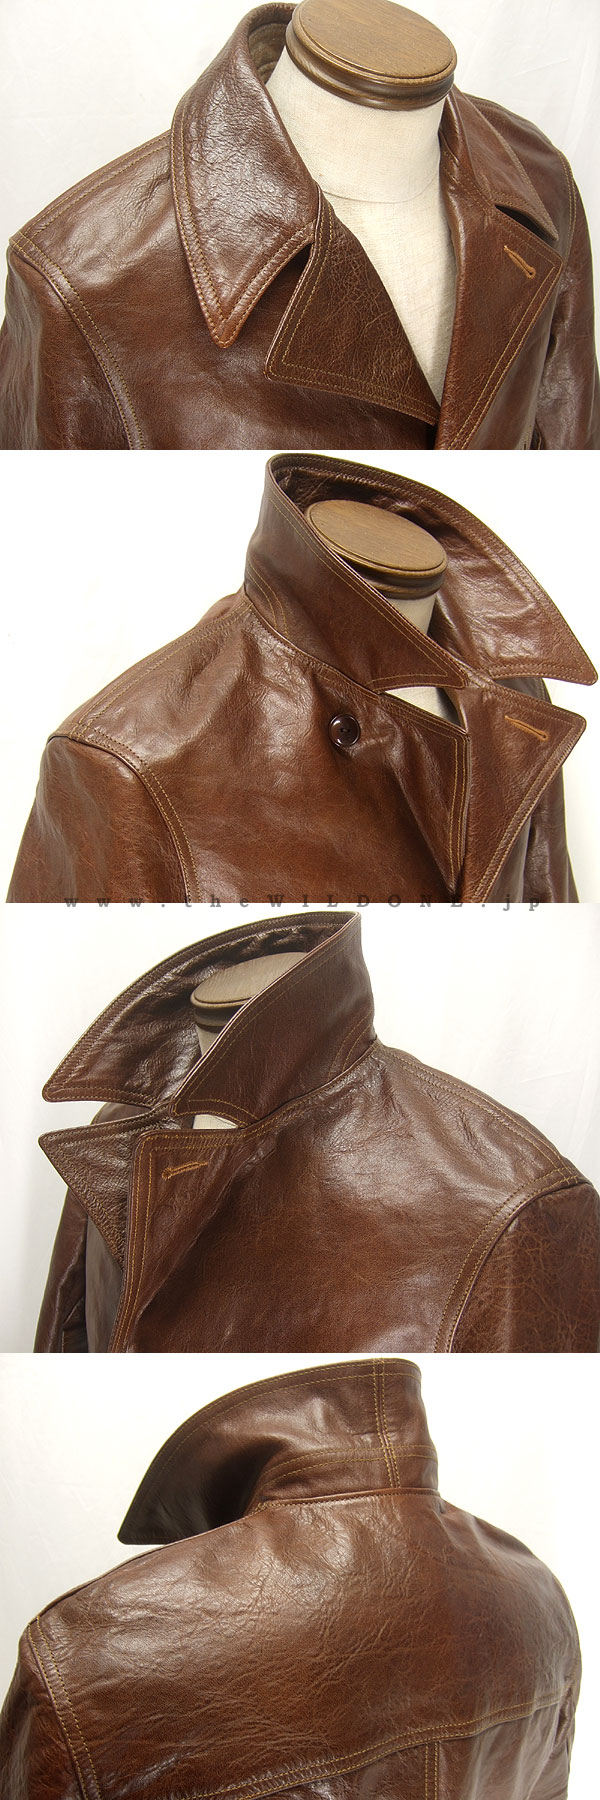 NEAL CASSADY RAILROAD by freewheelers 【SWITCHYARD COAT スイッチヤード コート <DEAD-LEAF BROWN デッド・リーフ ブラウン>】